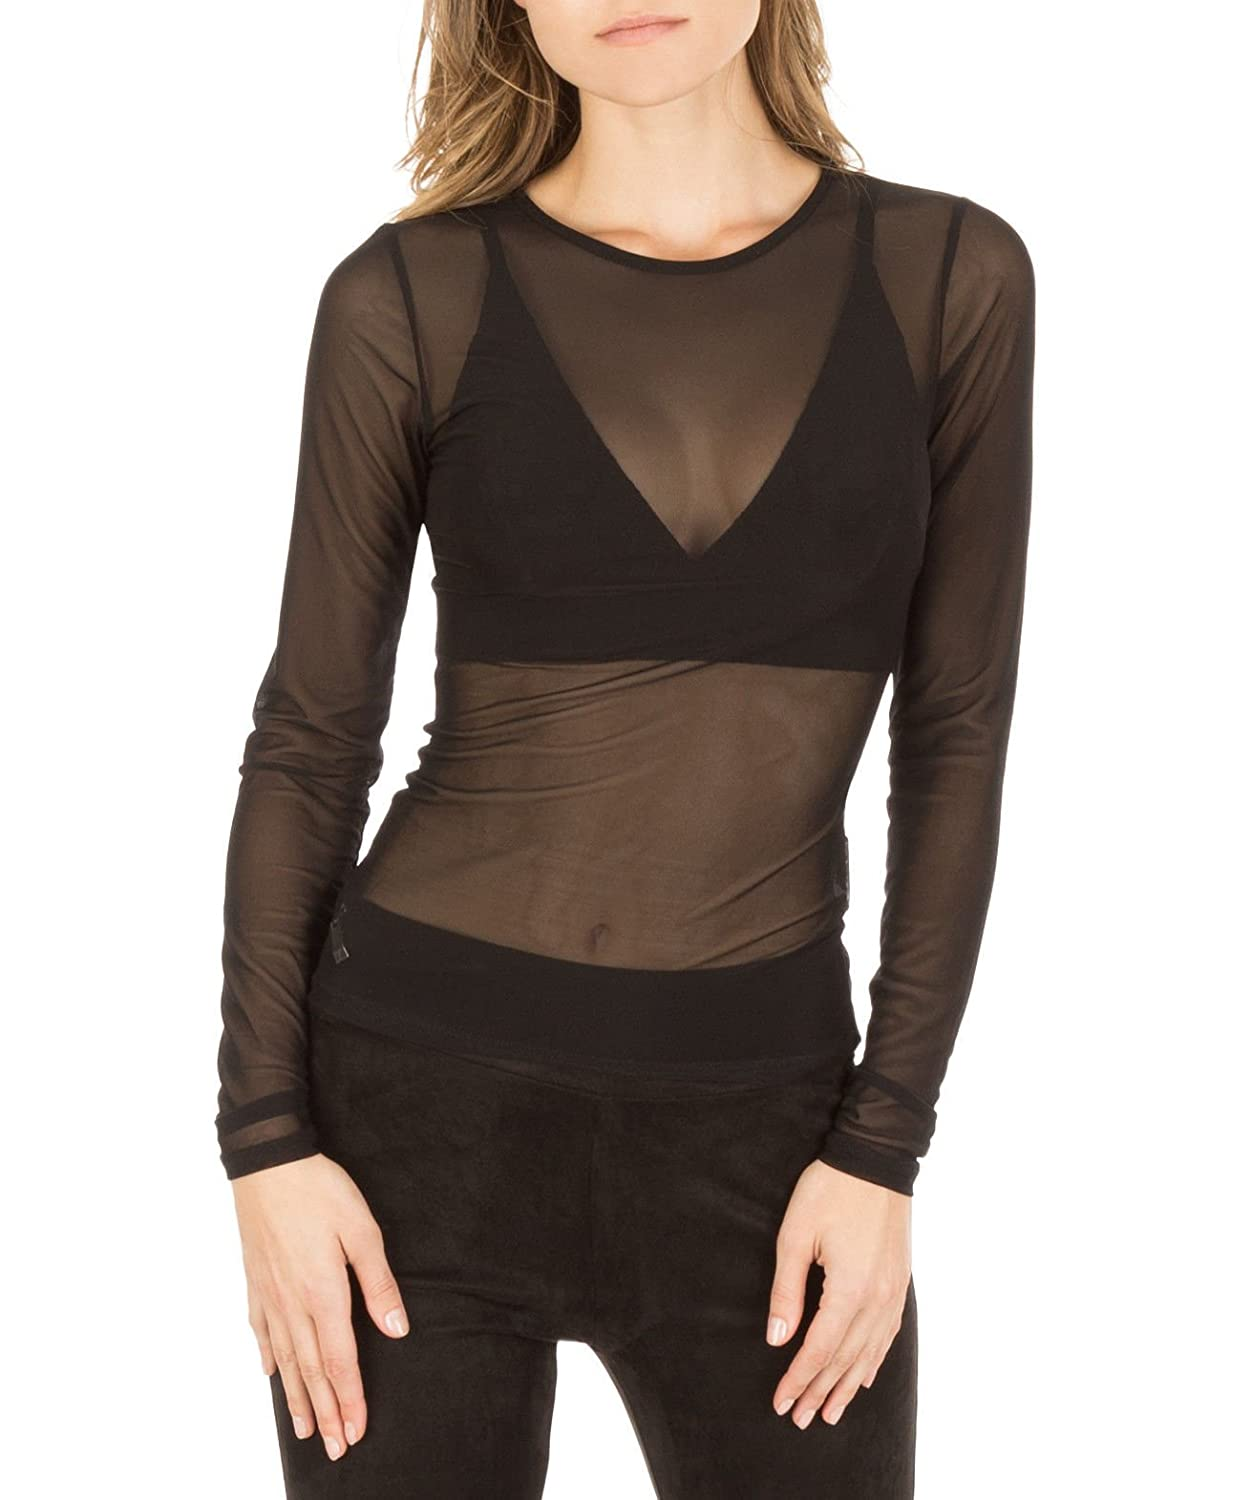 c1a68b24a78dd Womens Long Sleeve Sheer Mesh See Through Plain Top Plus Size T-Shirt   Amazon.co.uk  Clothing